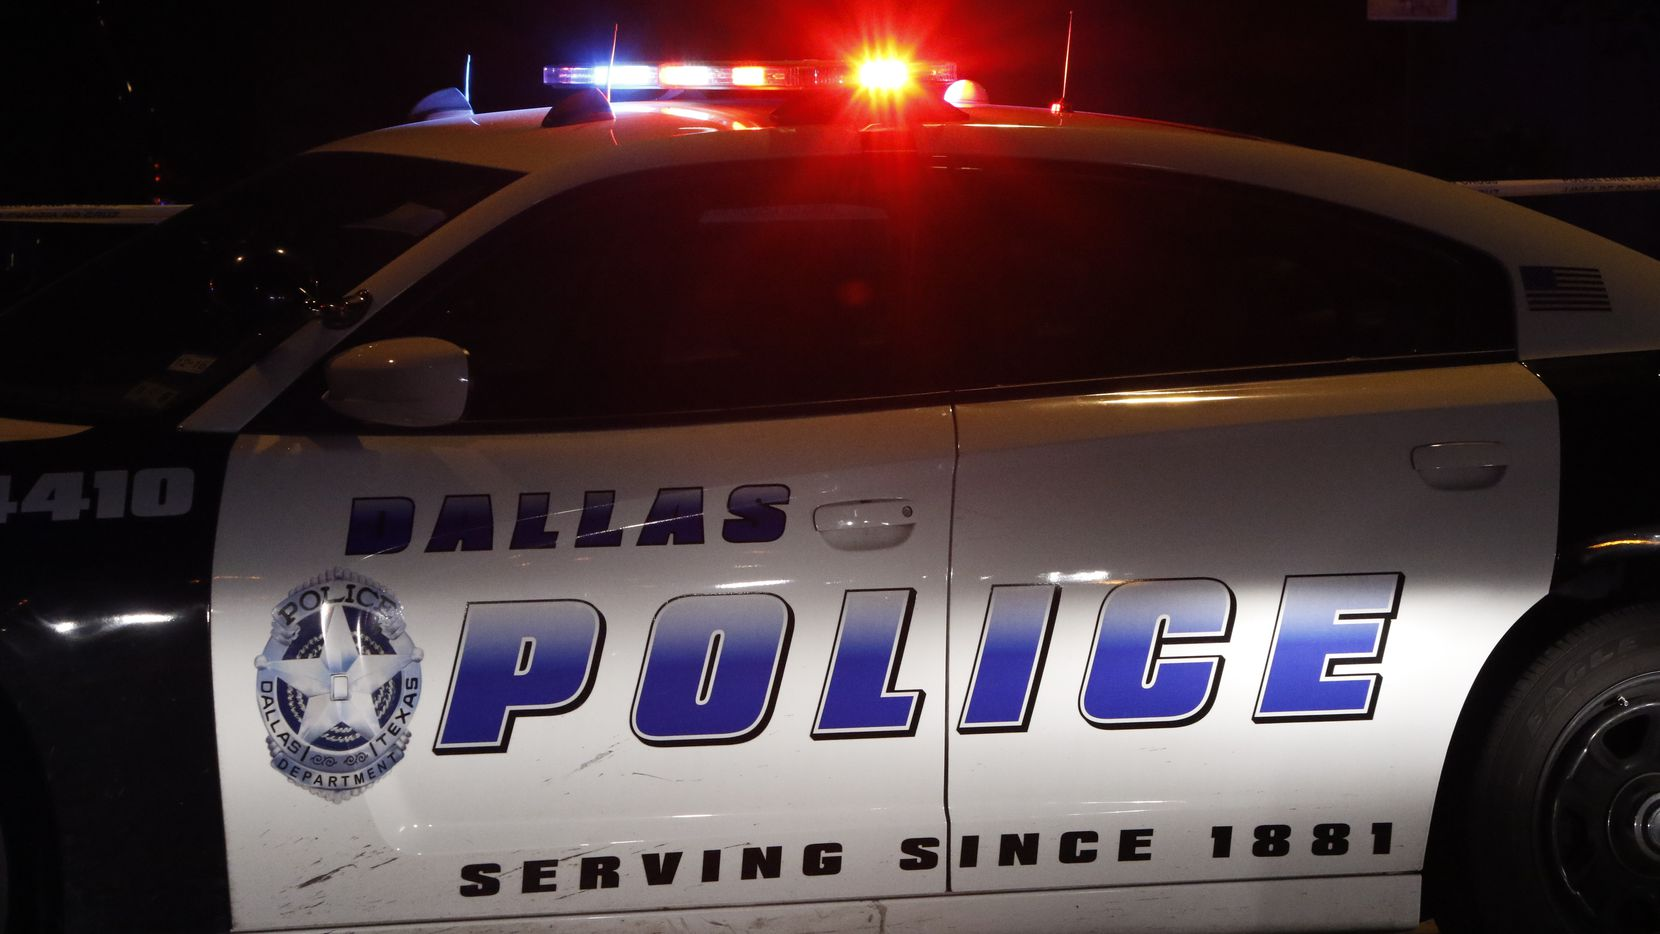 Police are searching for a man who shot at another vehicle during a road rage incident, injuring a 9-year-old.